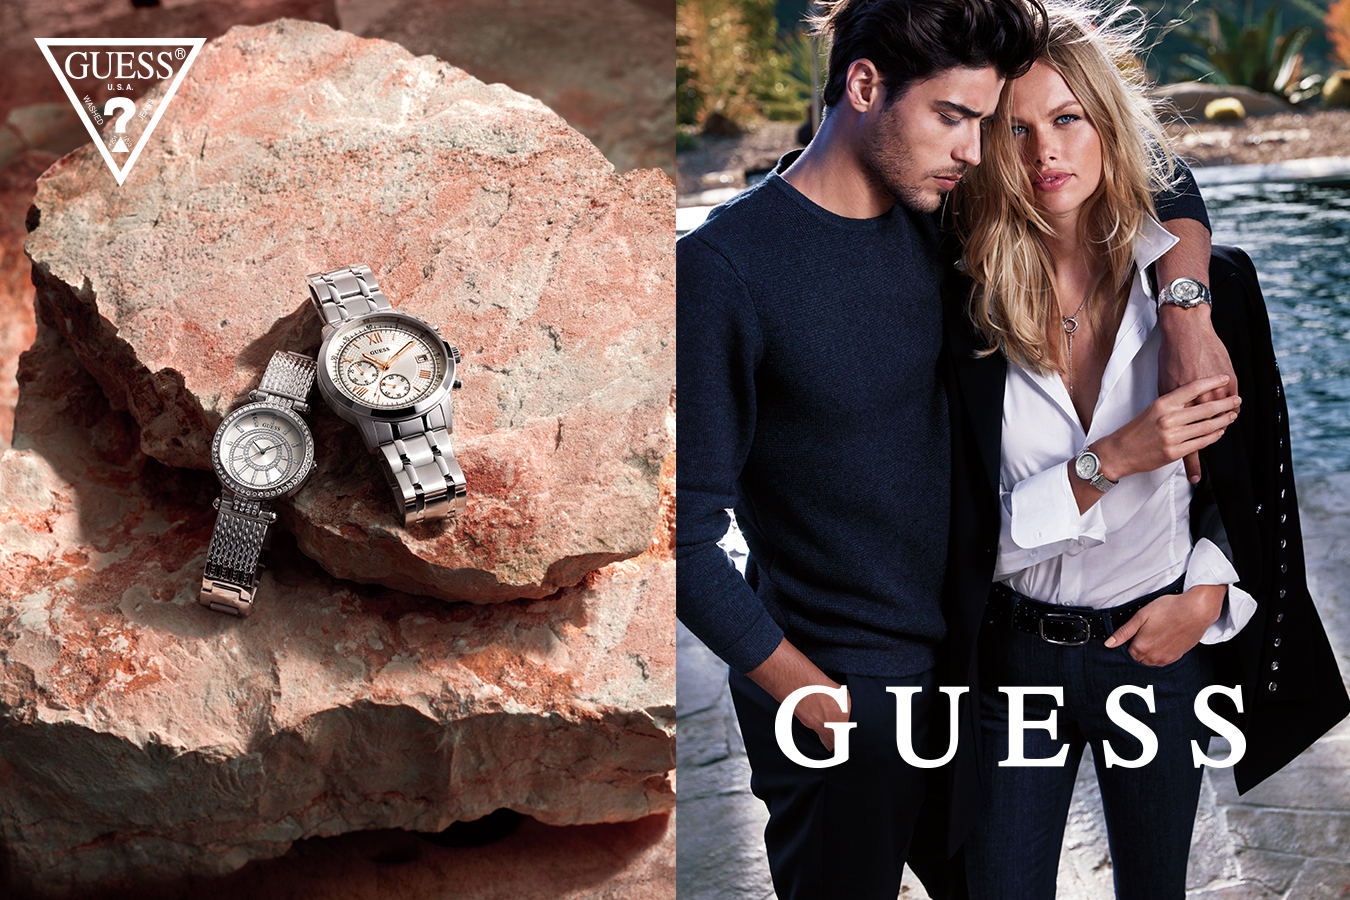 guess_3